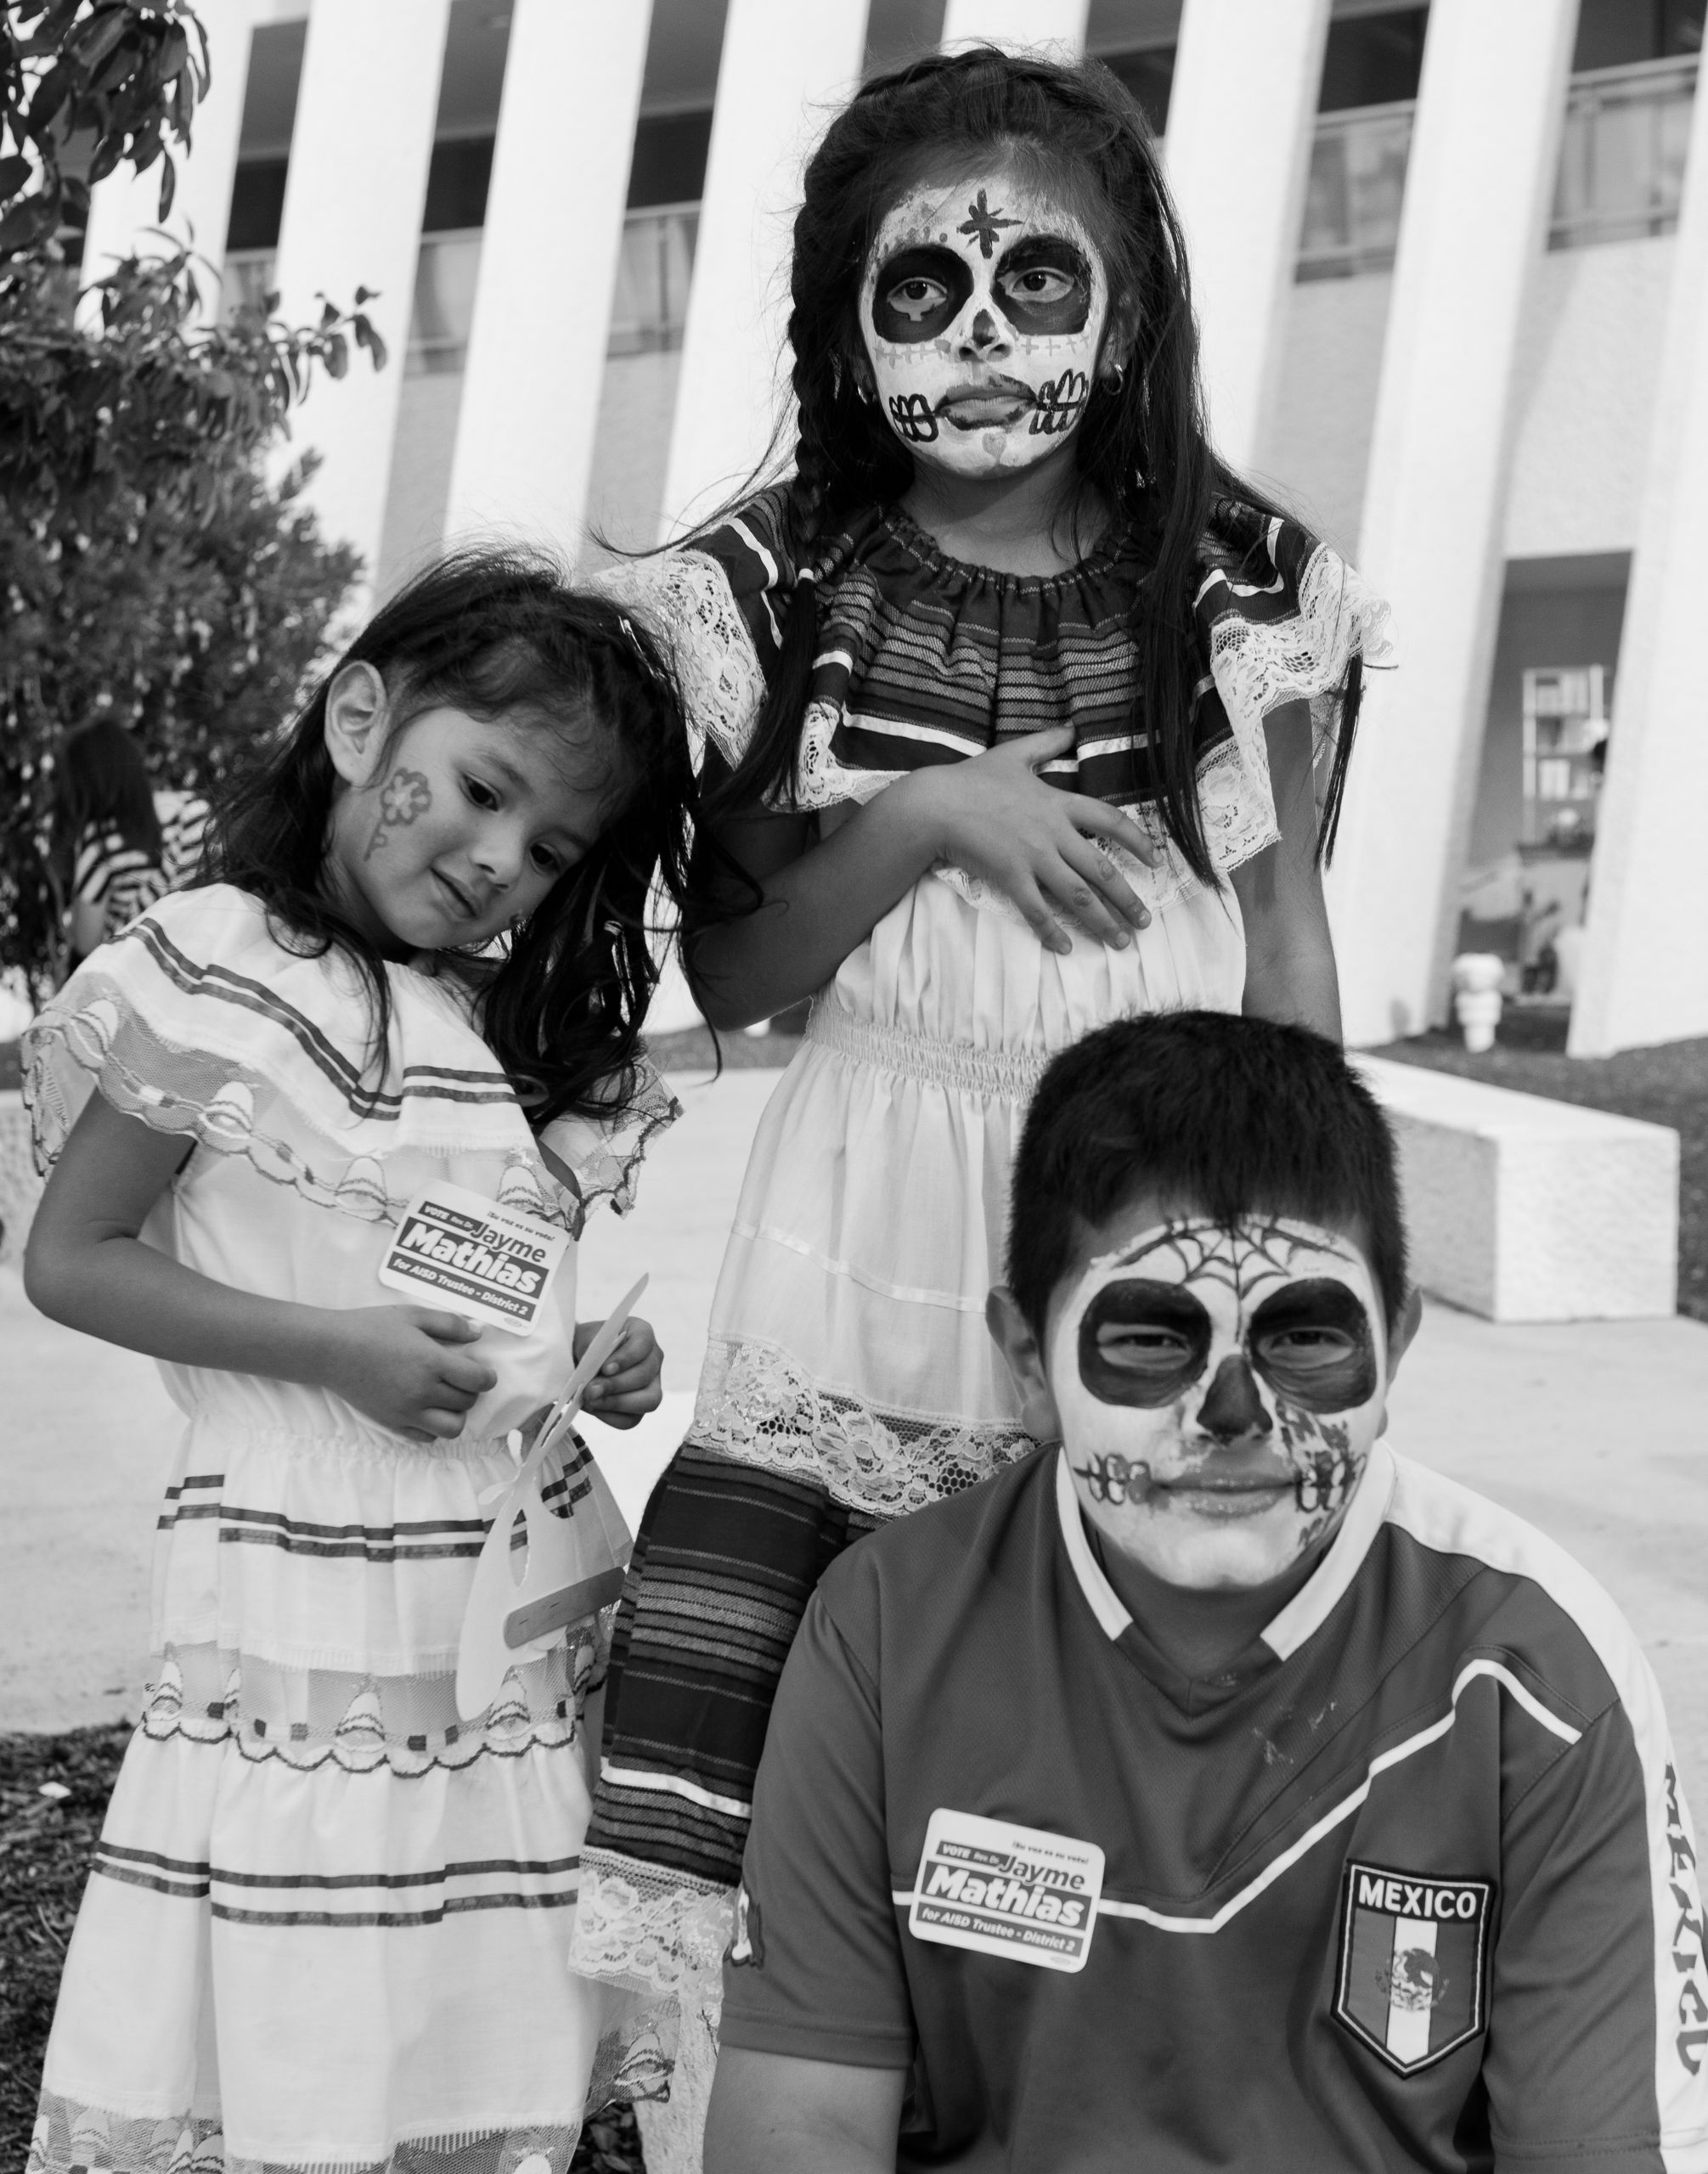 Children at the Día De Los Muertos Celebration